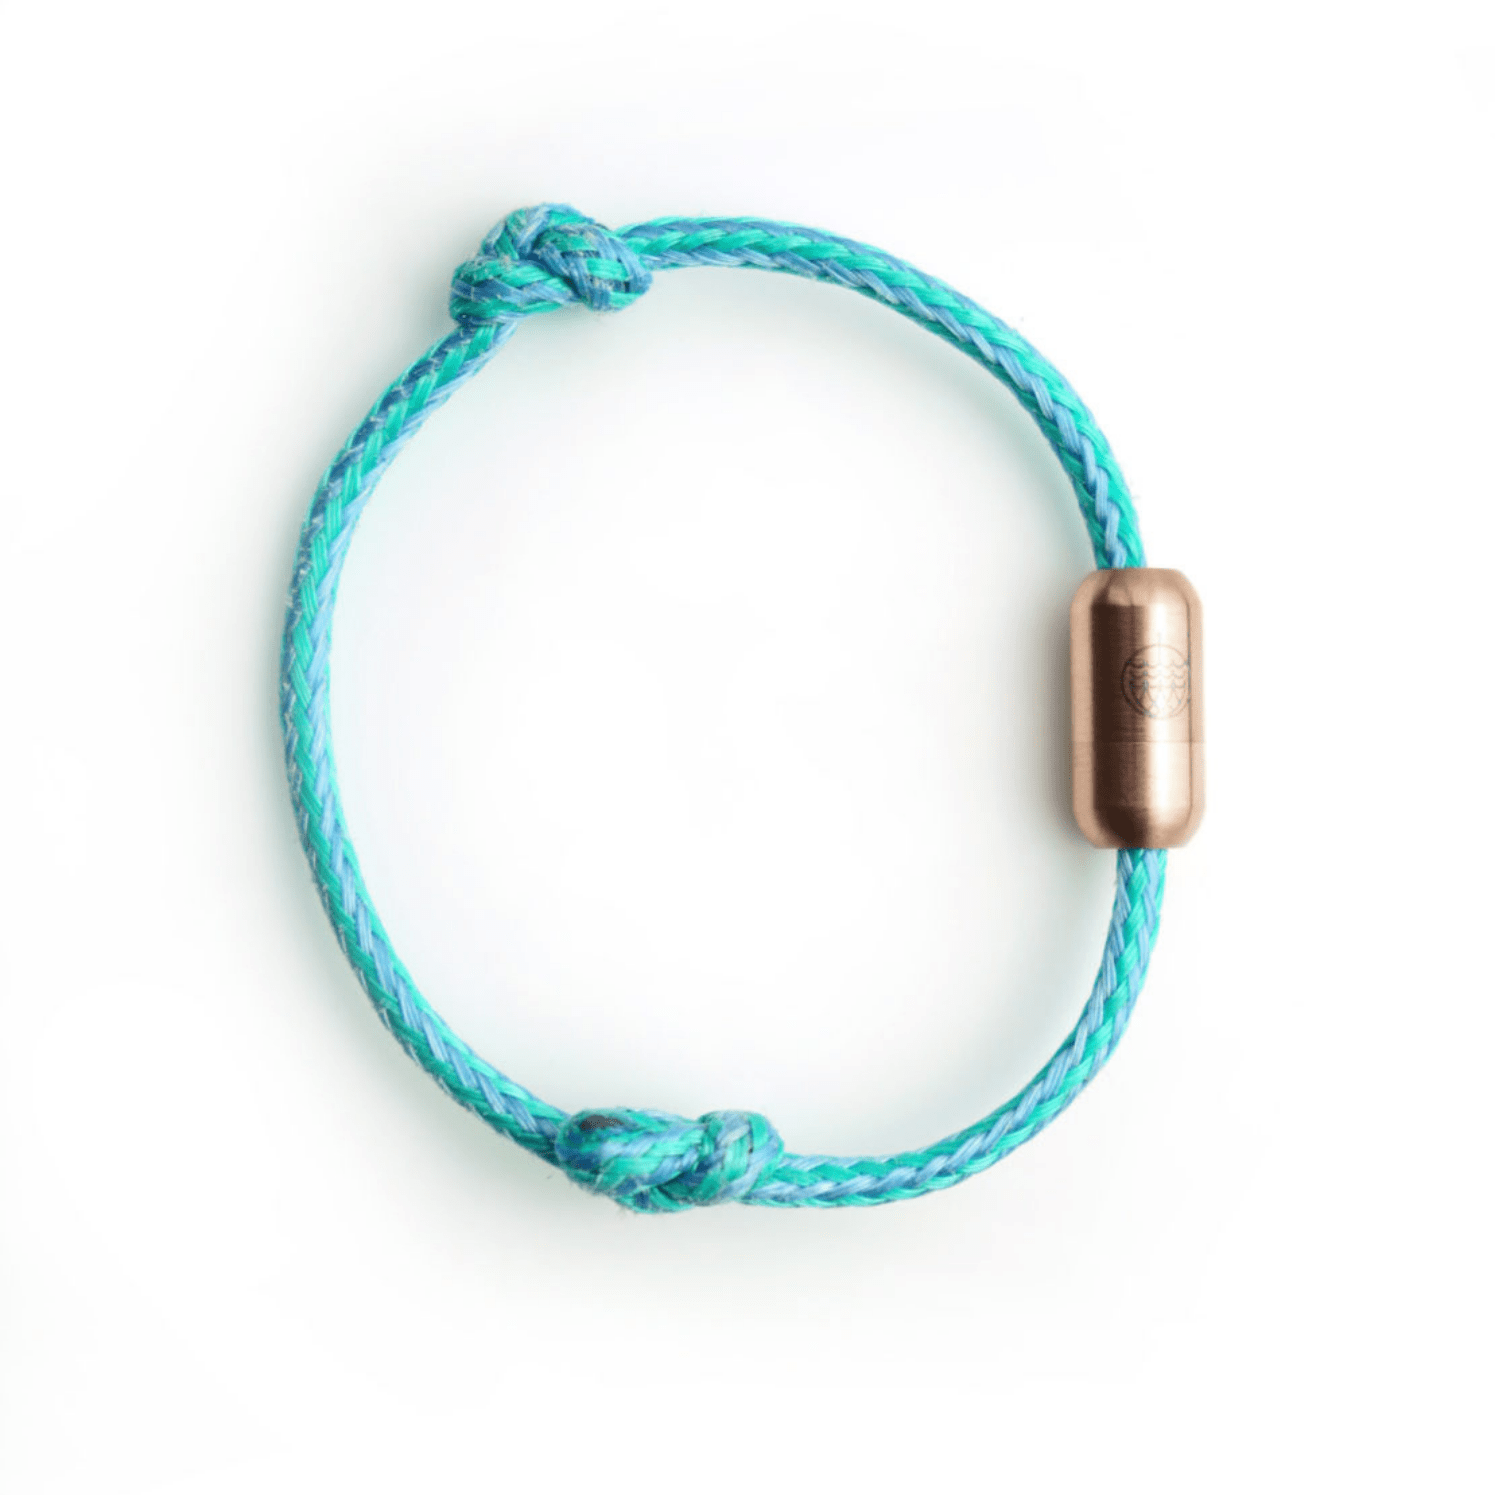 sustainable gifts Bracenet S (19cm) Upcycled fishing nets bracelet - North Sea II